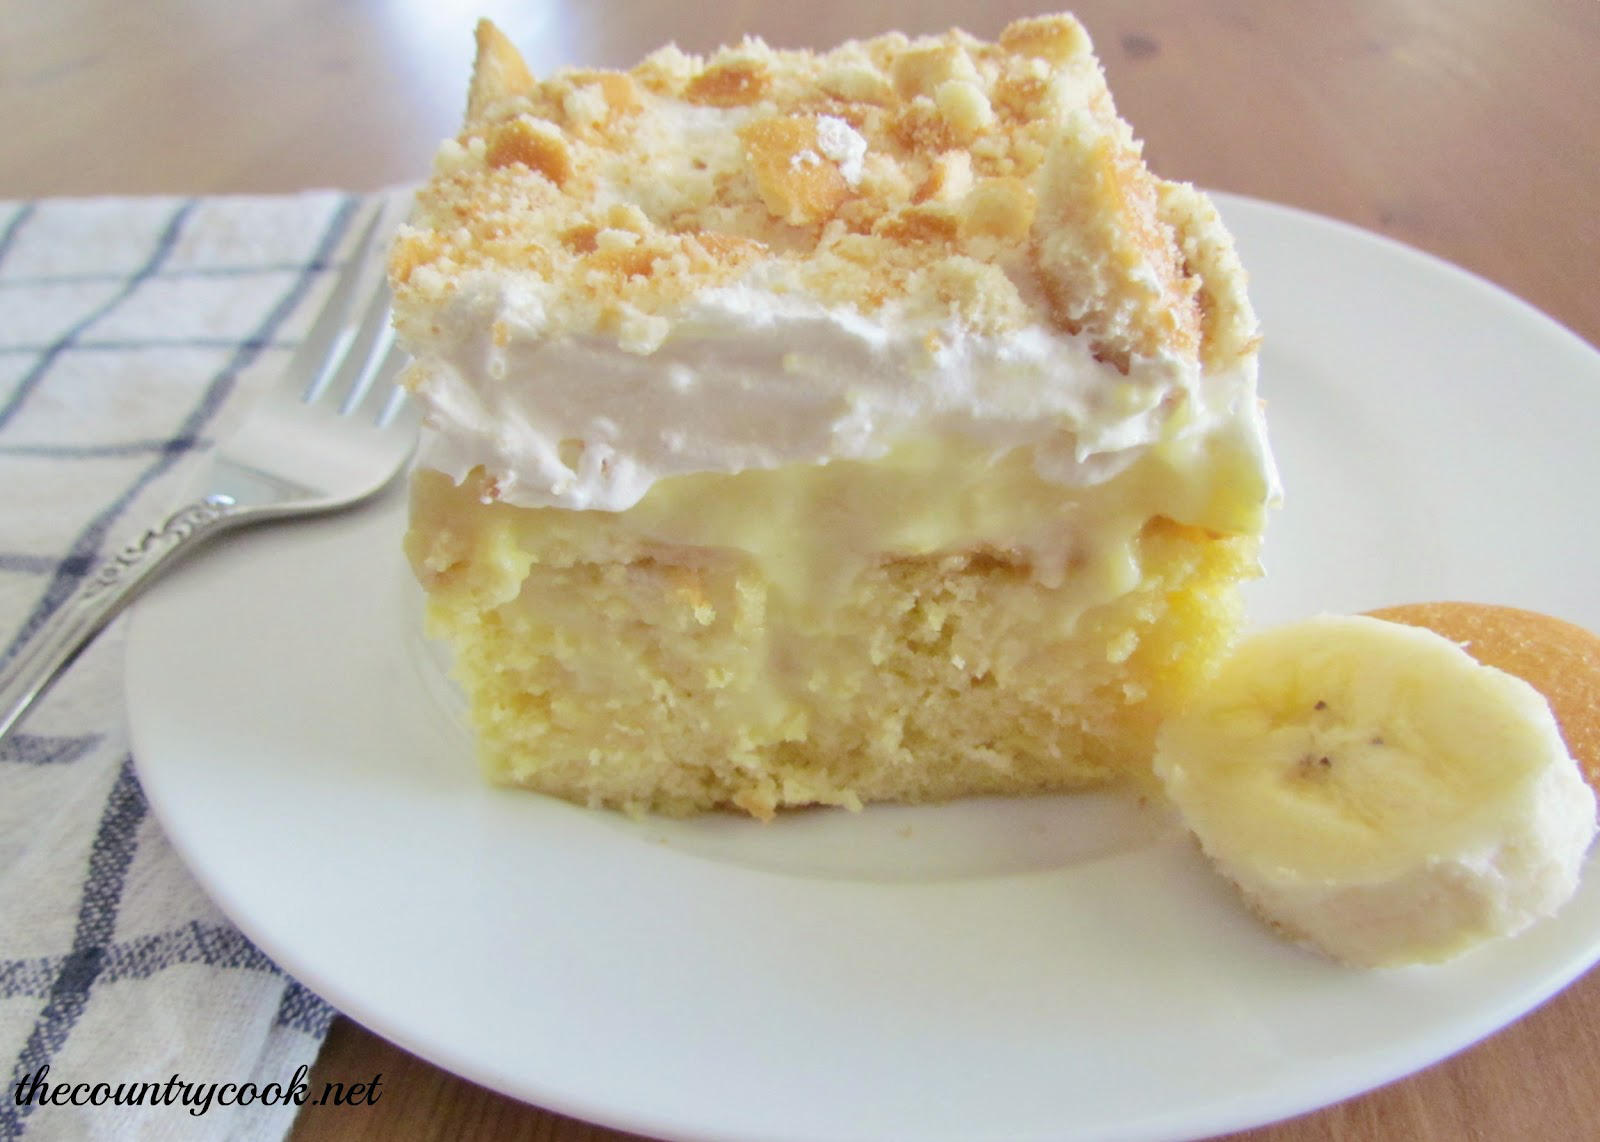 Easy Coconut Cake Recipe With Yellow Cake Mix